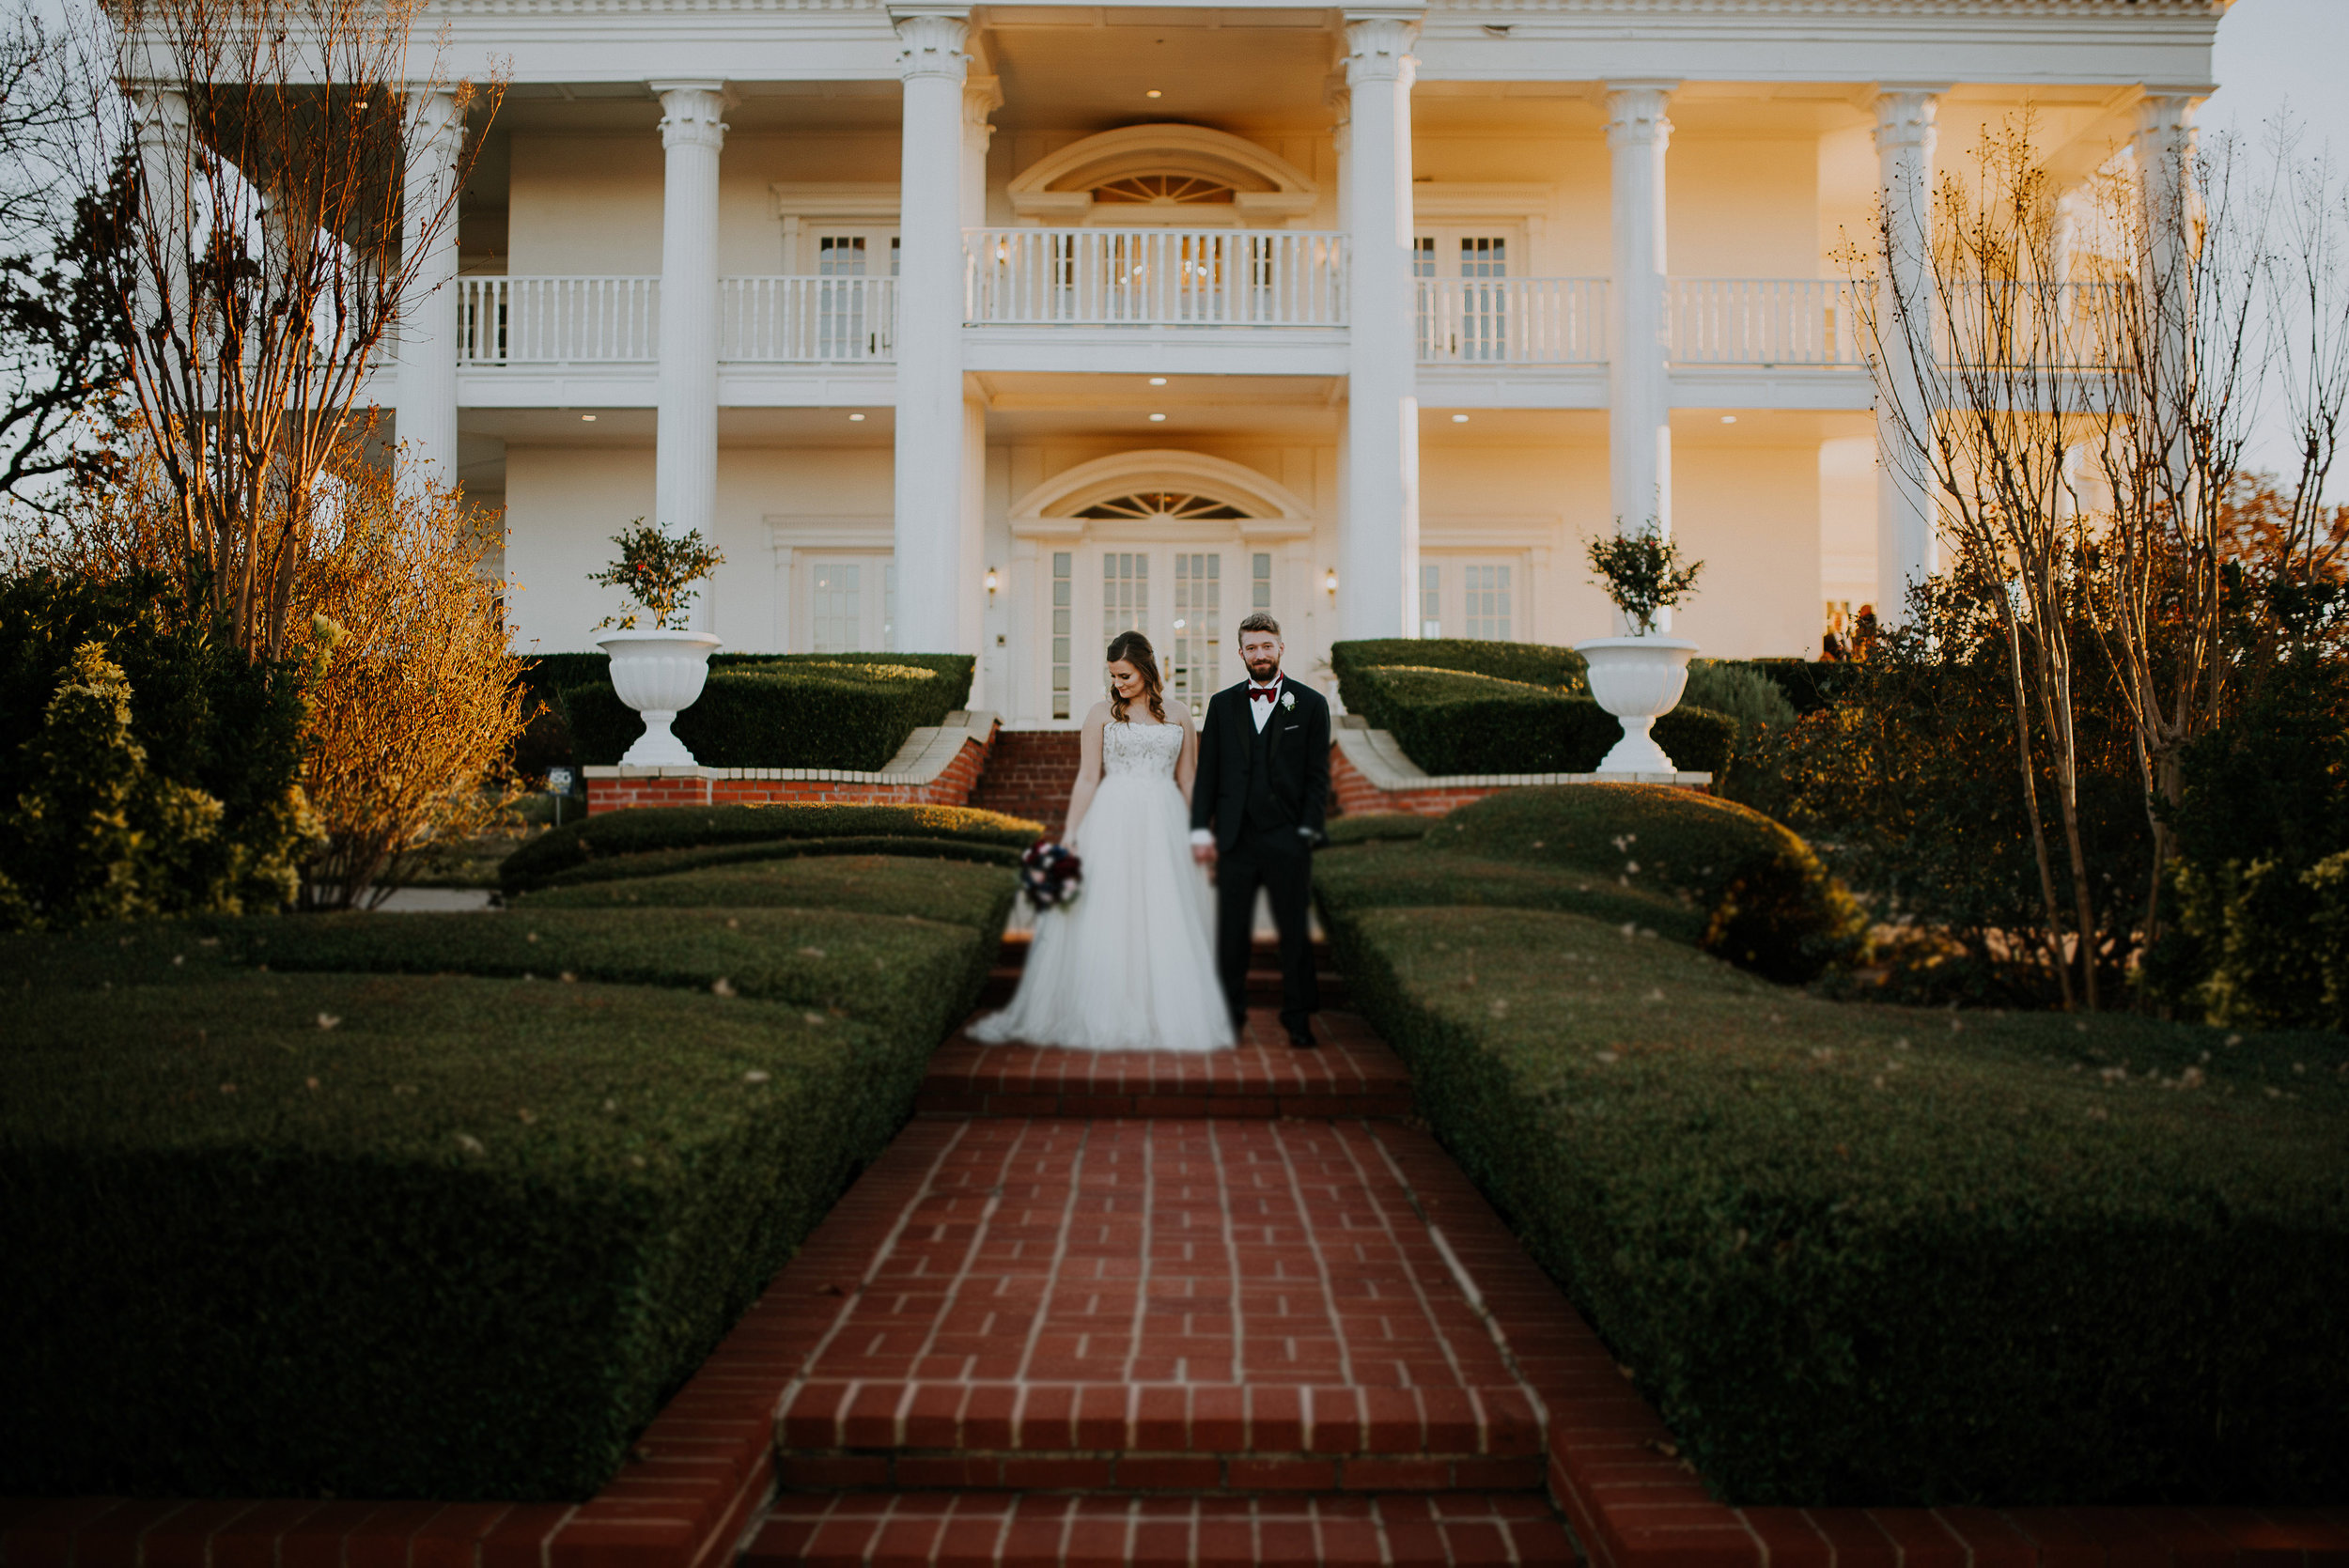 Dallas_Fort_Worth_wedding_Photographer_lone_star_mansion_burleson_texas_103